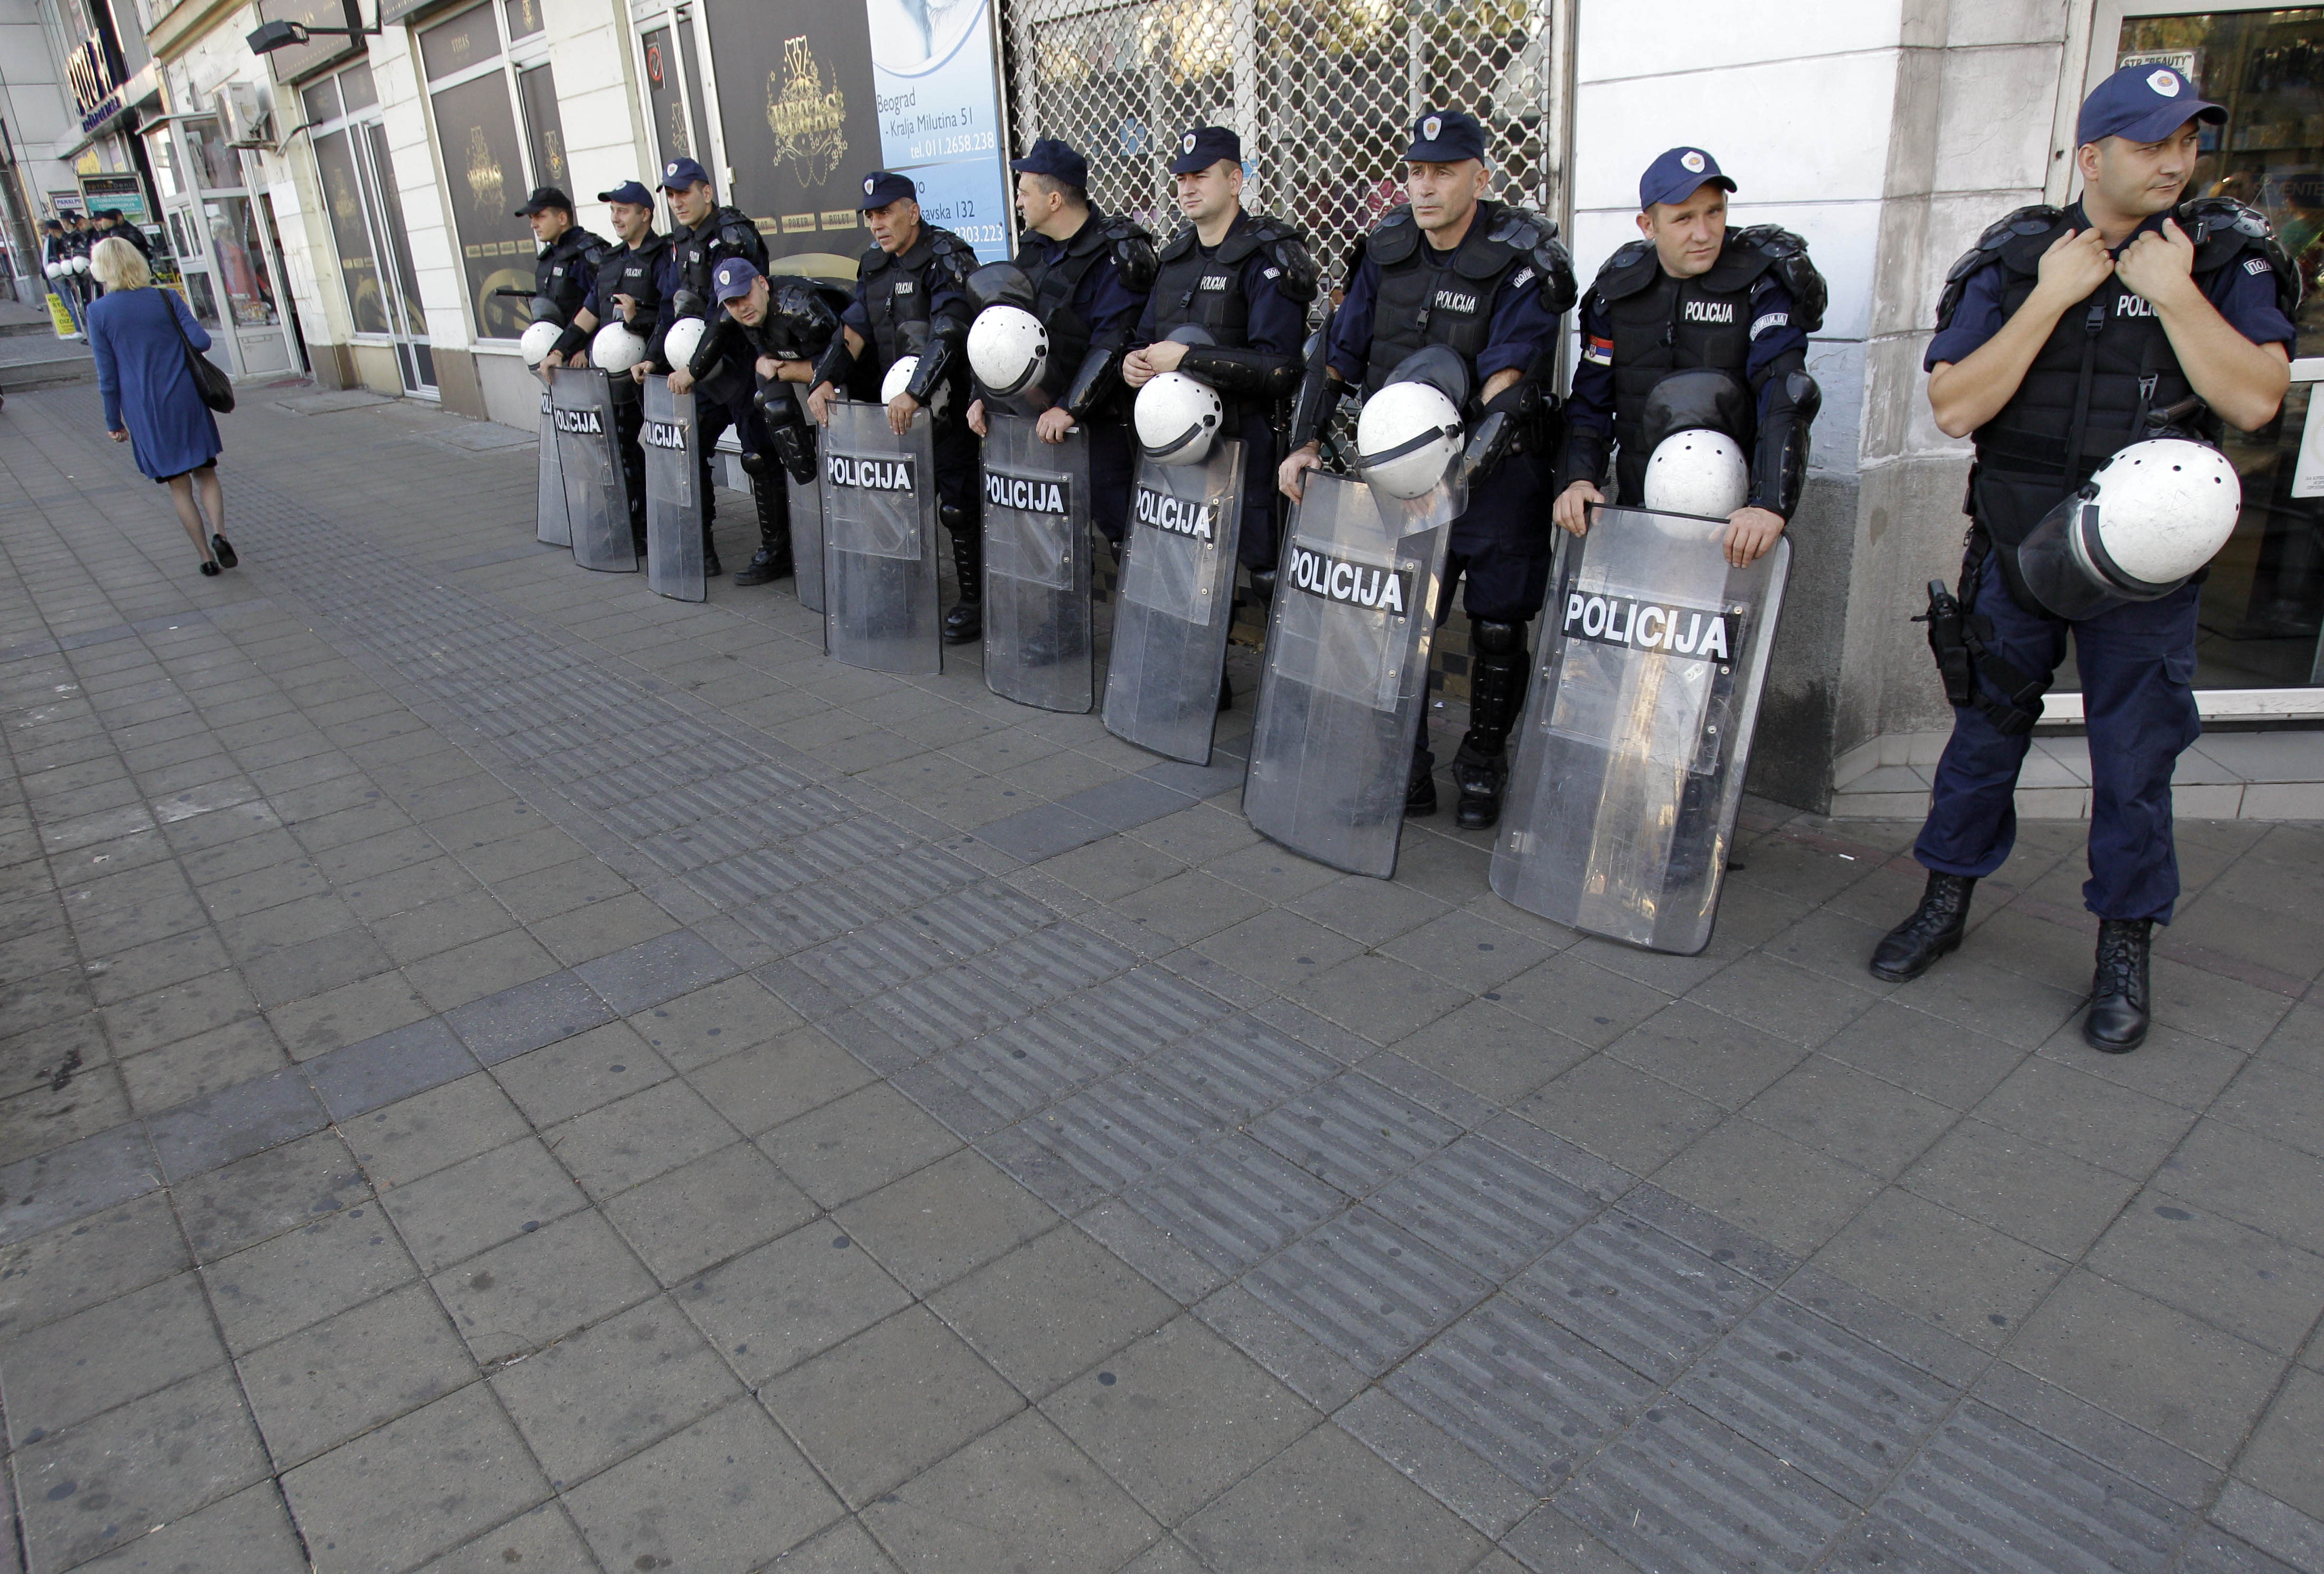 A woman passes by Serbian riot policemen cordon near the an art exhibition gallery in Belgrade, Serbia, Wednesday, Oct 3, 2012. Meanwhile, some 2,000 of riot policemen were deployed on Wednesday in front of an art exhibition in Belgrade organized by gay activists which the extremists had threatened to disrupt. Serbia's police on Wednesday banned a gay pride march in Belgrade, citing security concerns but also complying with a request from Serbia's Christian Orthodox church. (AP Photo/Darko Vojinovic)